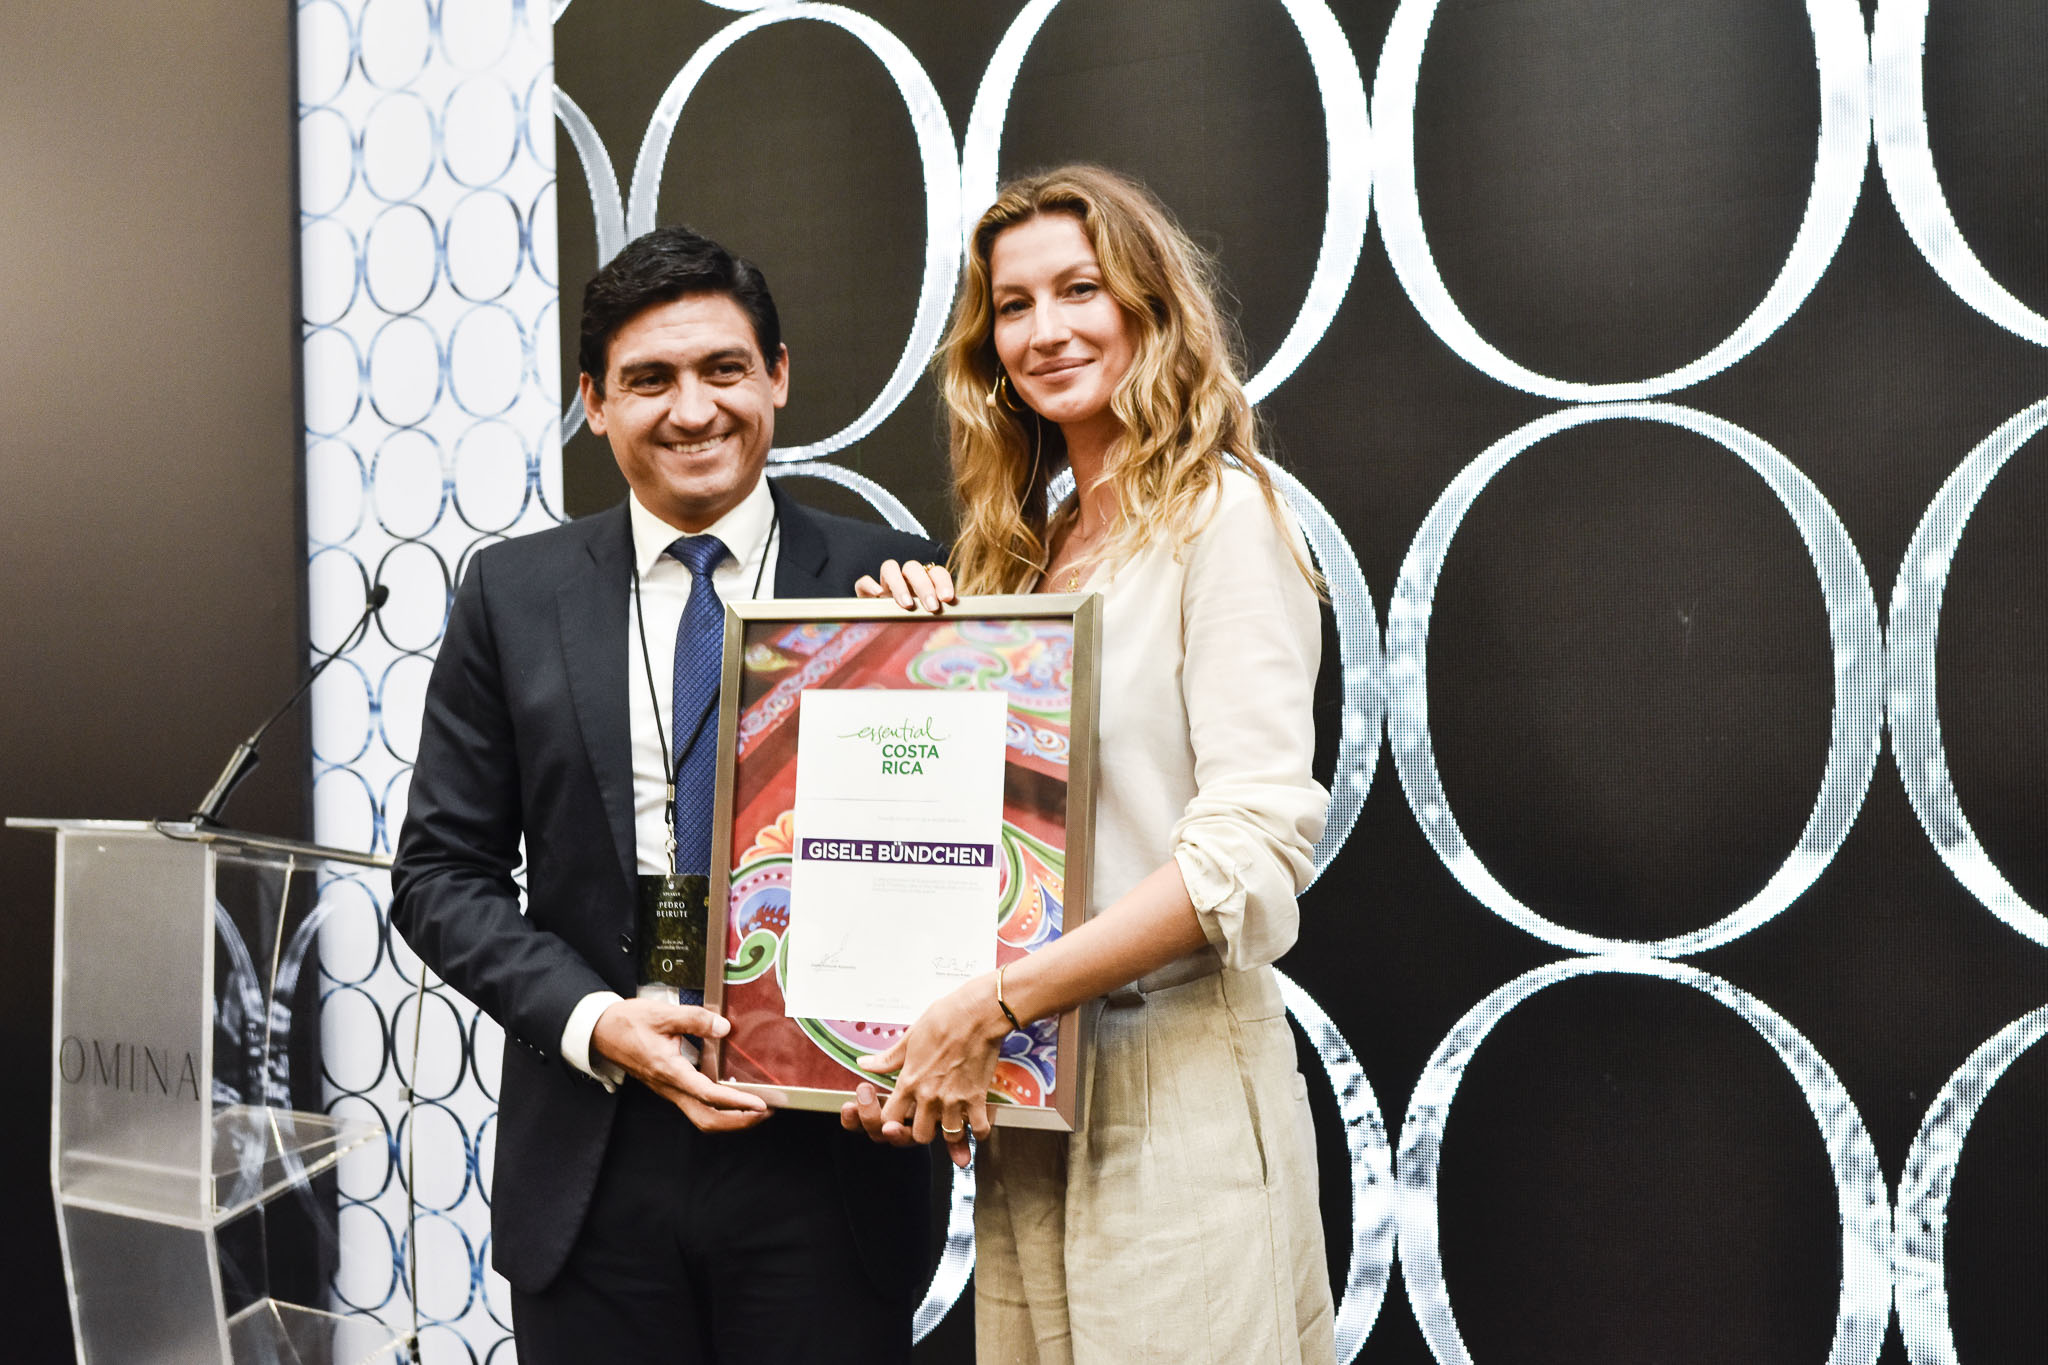 Pedro Beirute, Director of the Costa Rican Promotion Office for Foreign Trade, with Gisele Bündchen.